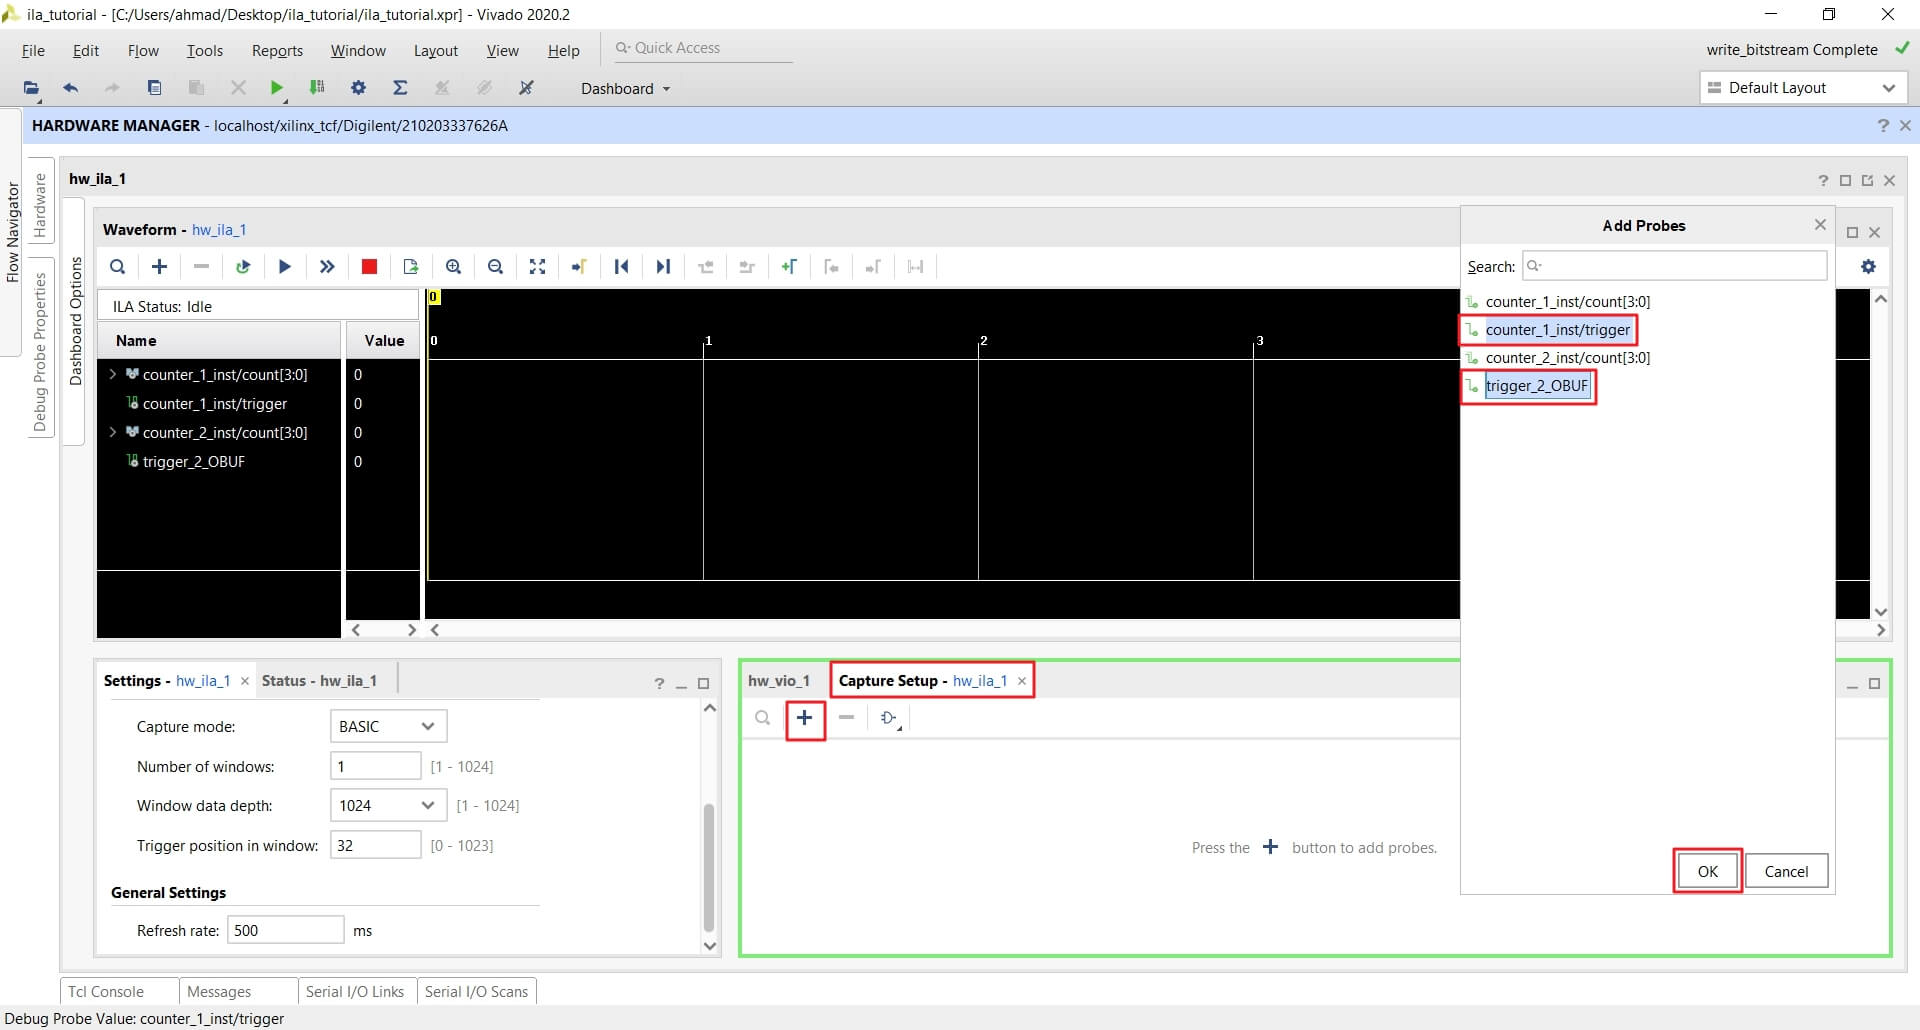 Add trigger and trigger_2 signals to ILA